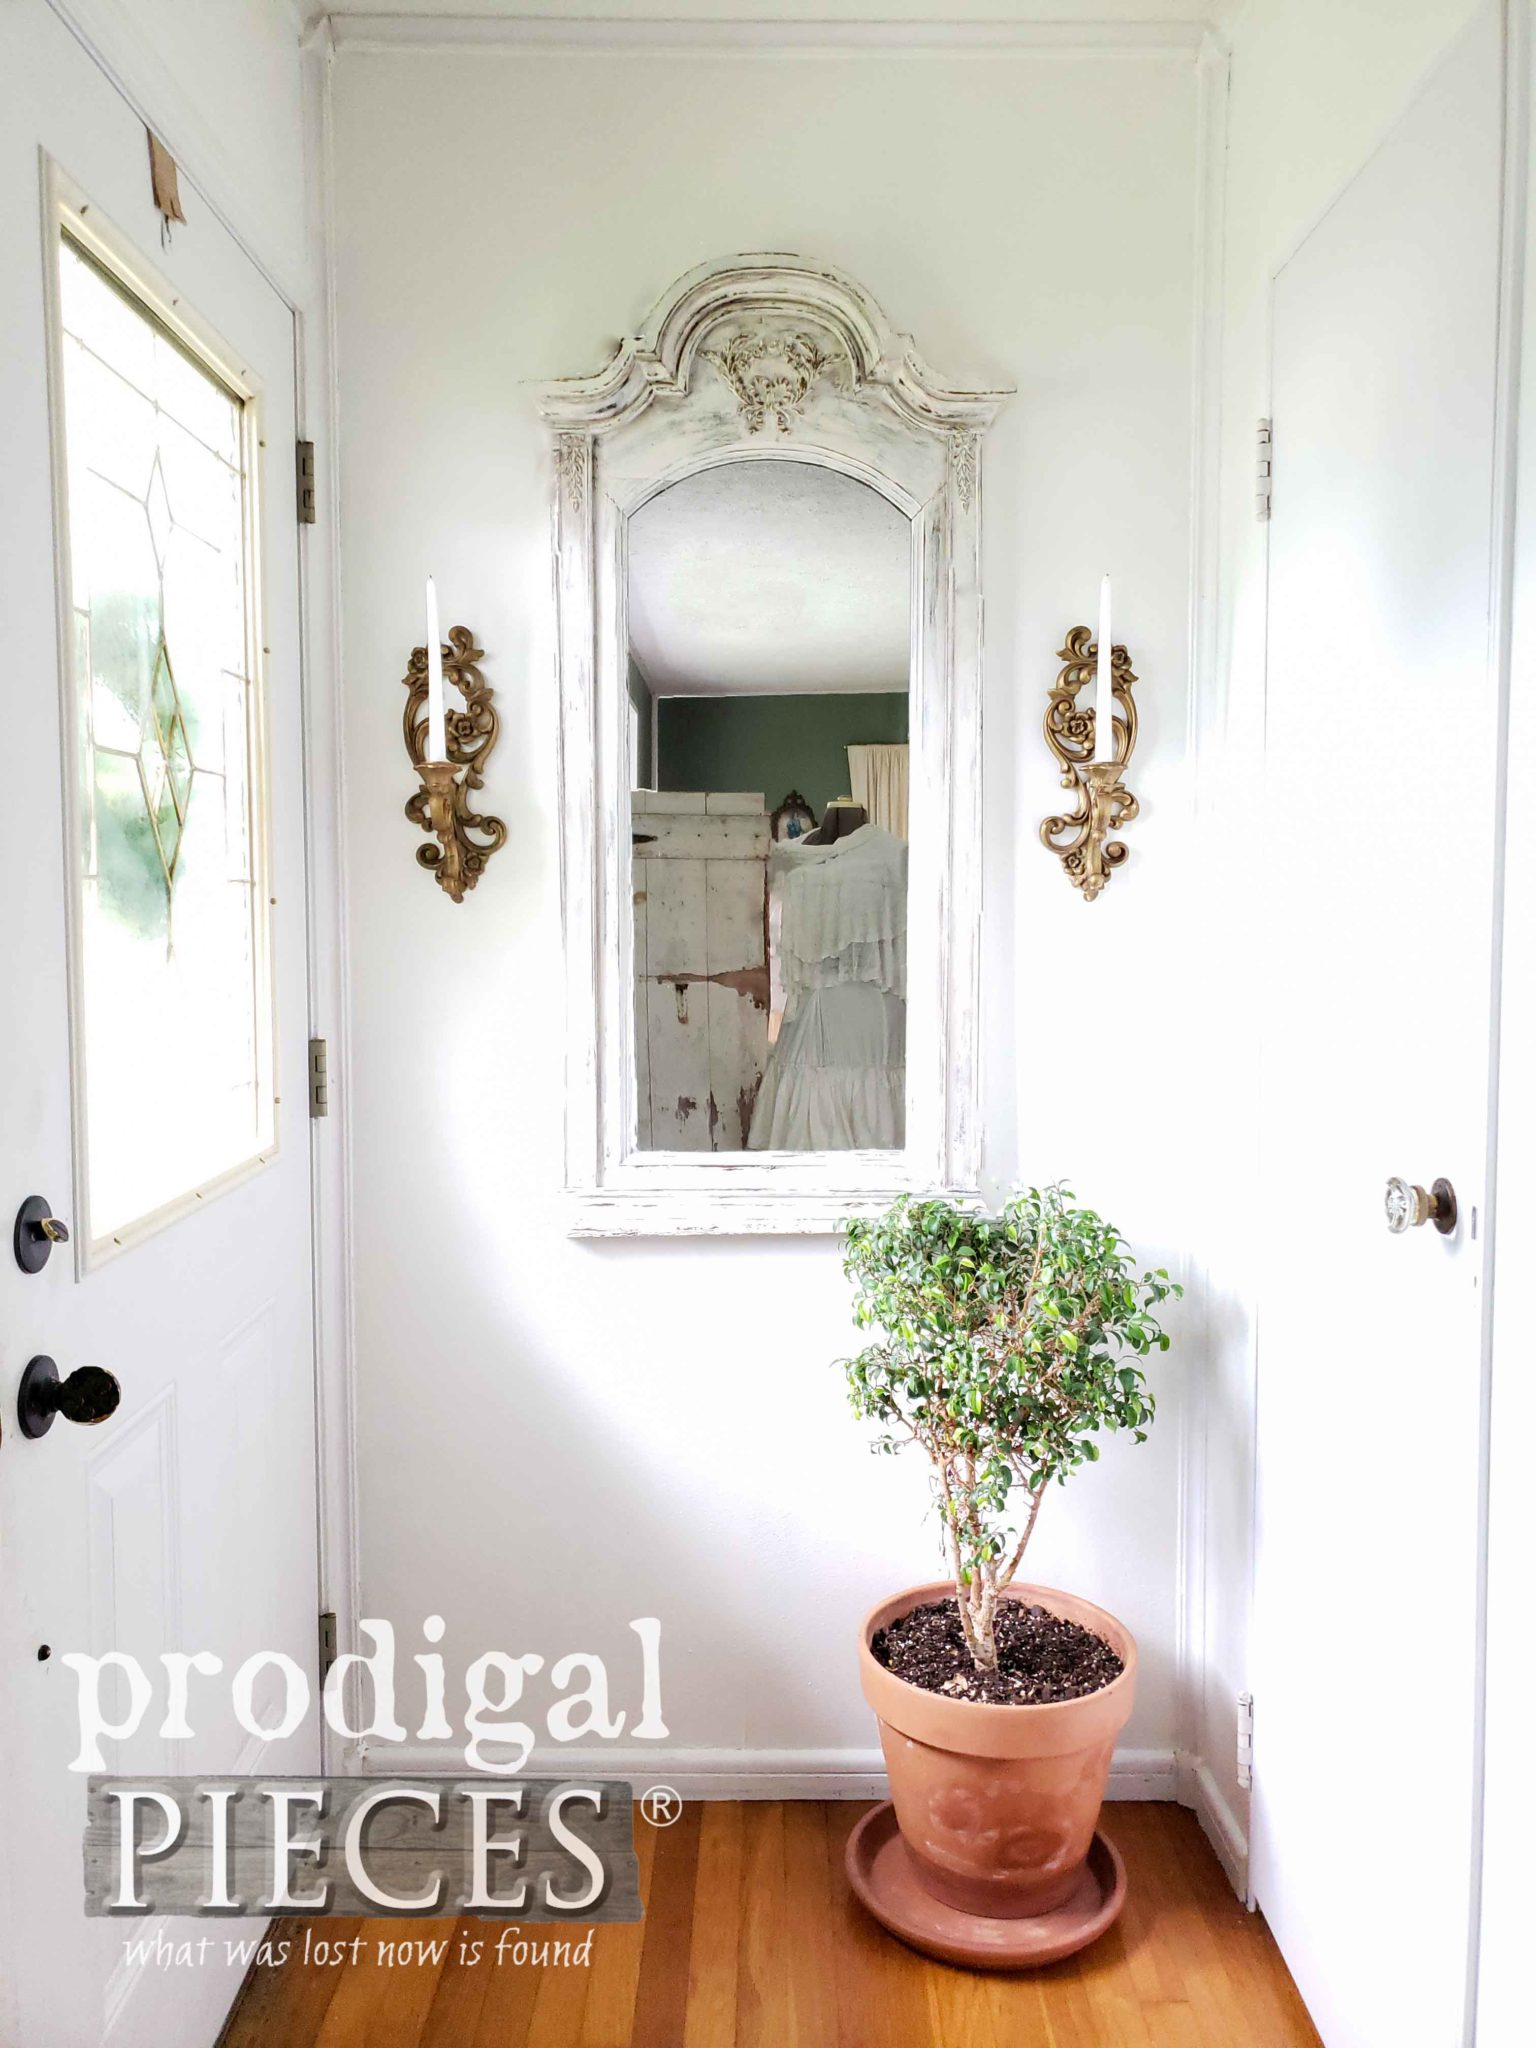 DIY Farmhouse Entry Using Upcycled Dresser Mirror as Decor to Create Depth and Interest by Larissa of Prodigal Pieces | prodigalpieces.com